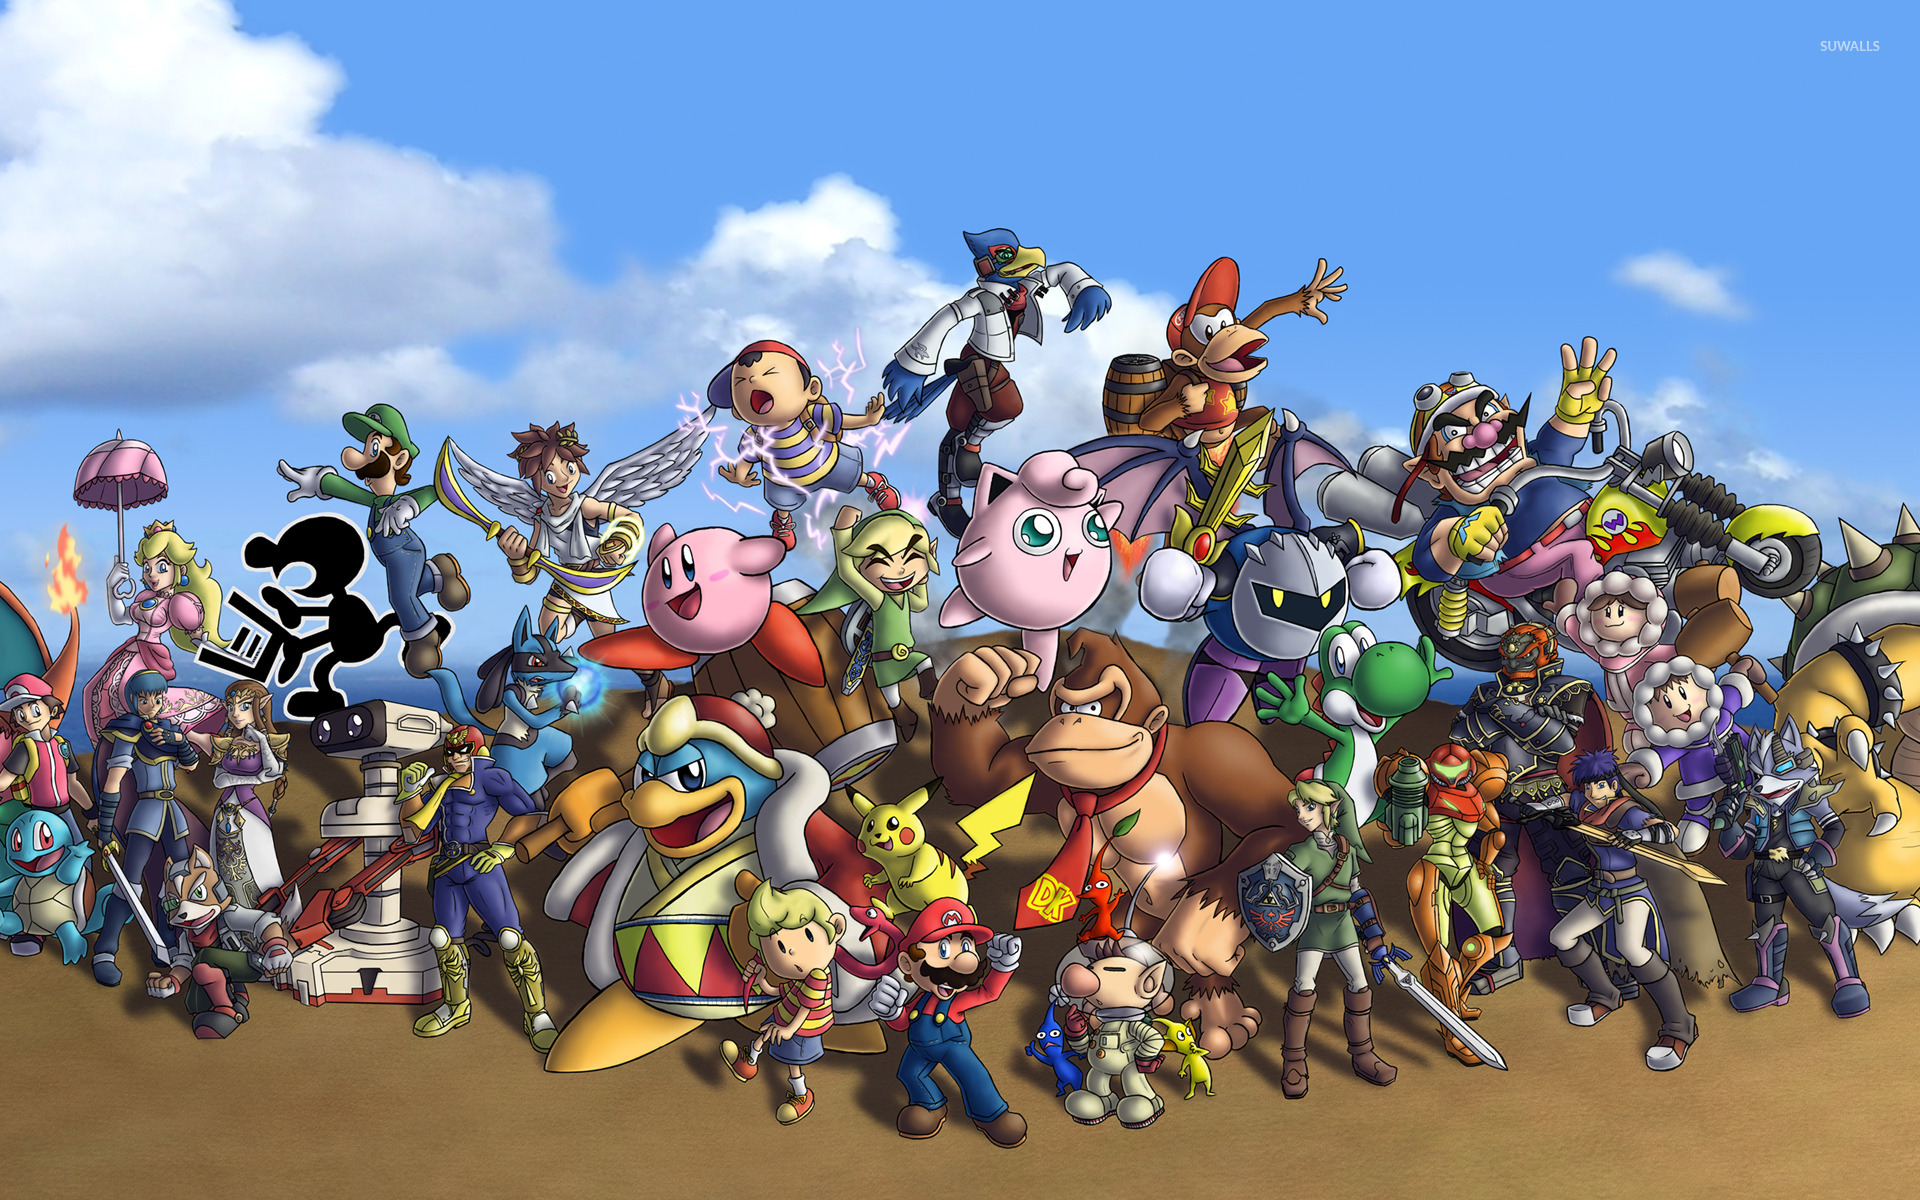 Free Download Super Smash Bros Wallpaper 1366x768 1366x768 For